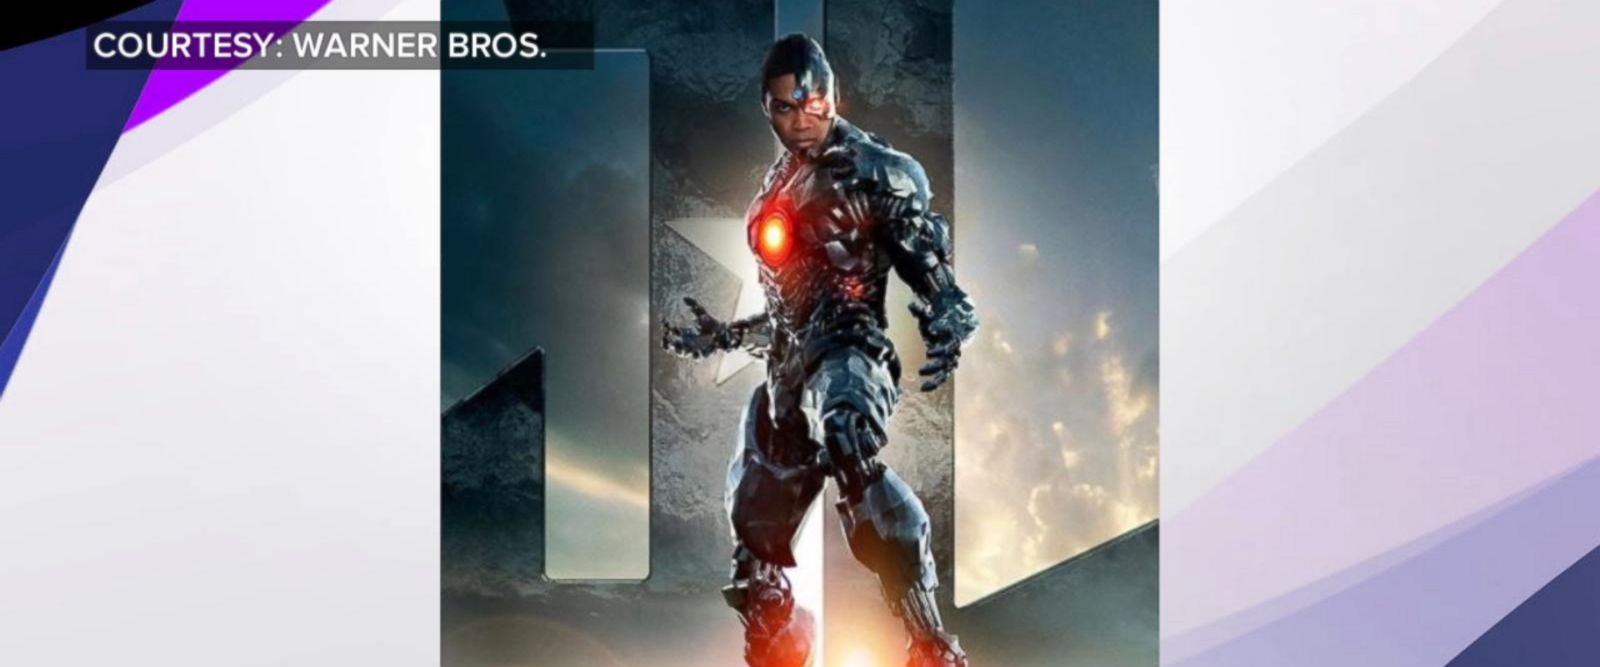 VIDEO: Actor Ray Fisher on how he prepared for Justice League role